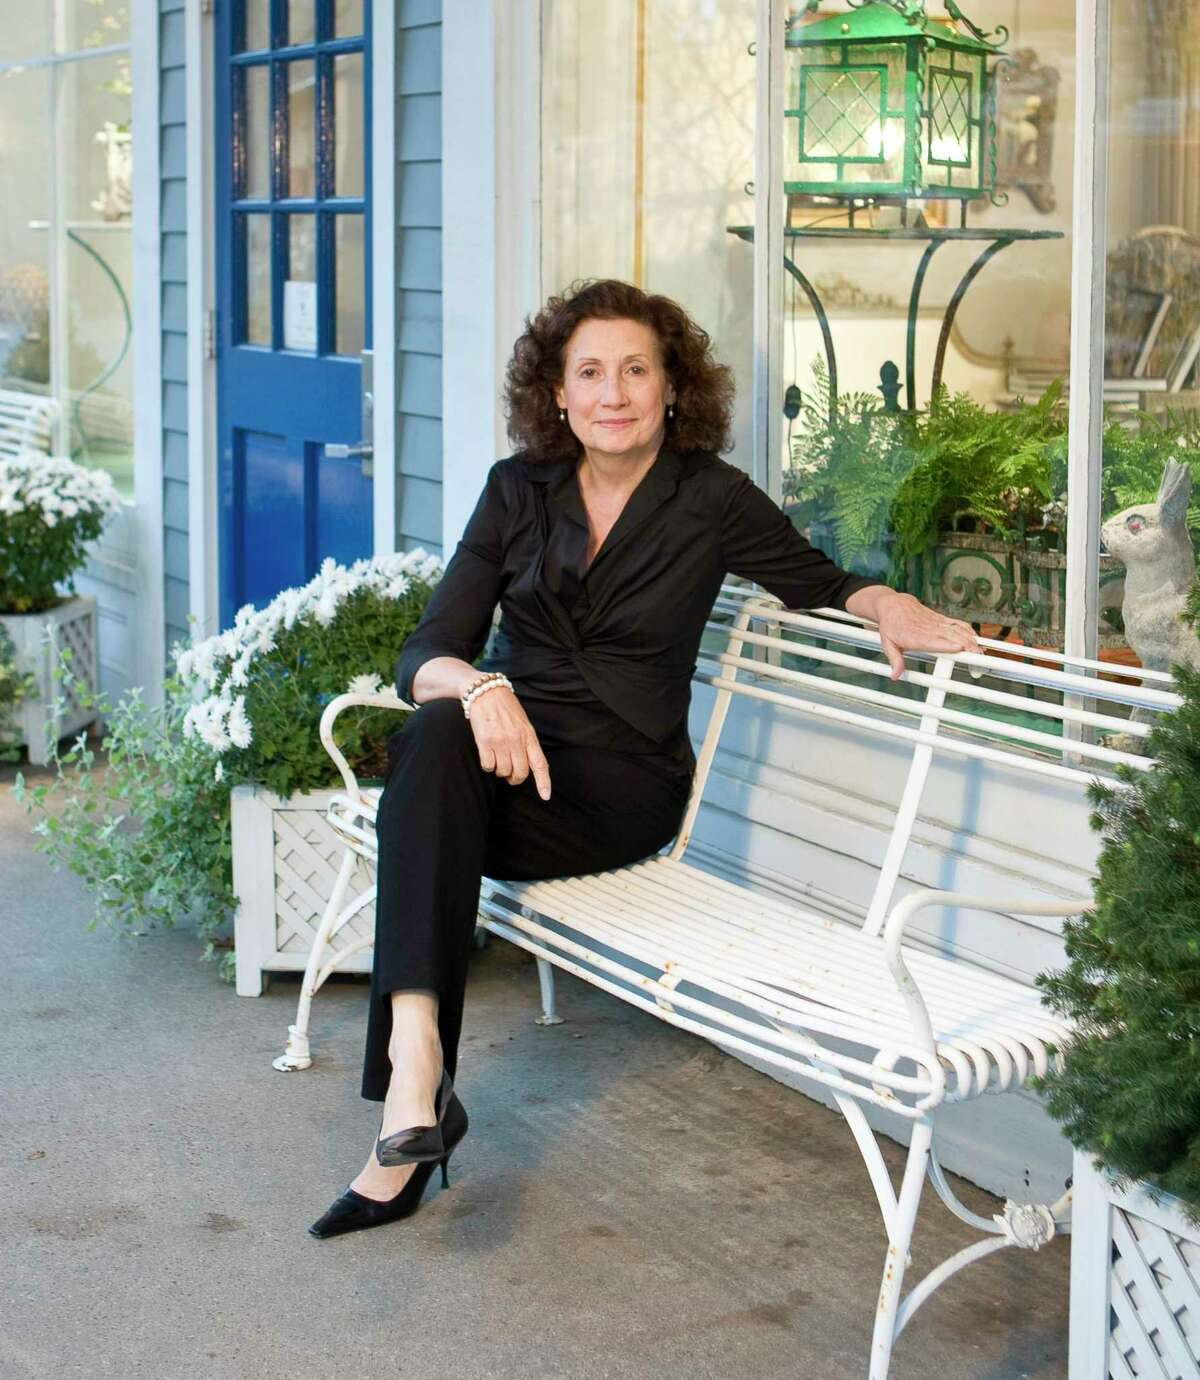 Paulette Peden, owner of Dawn Hill Antiques in New Preston, is photographed in front of her store, which specializes in Swedish interior design furnishings and accessories.